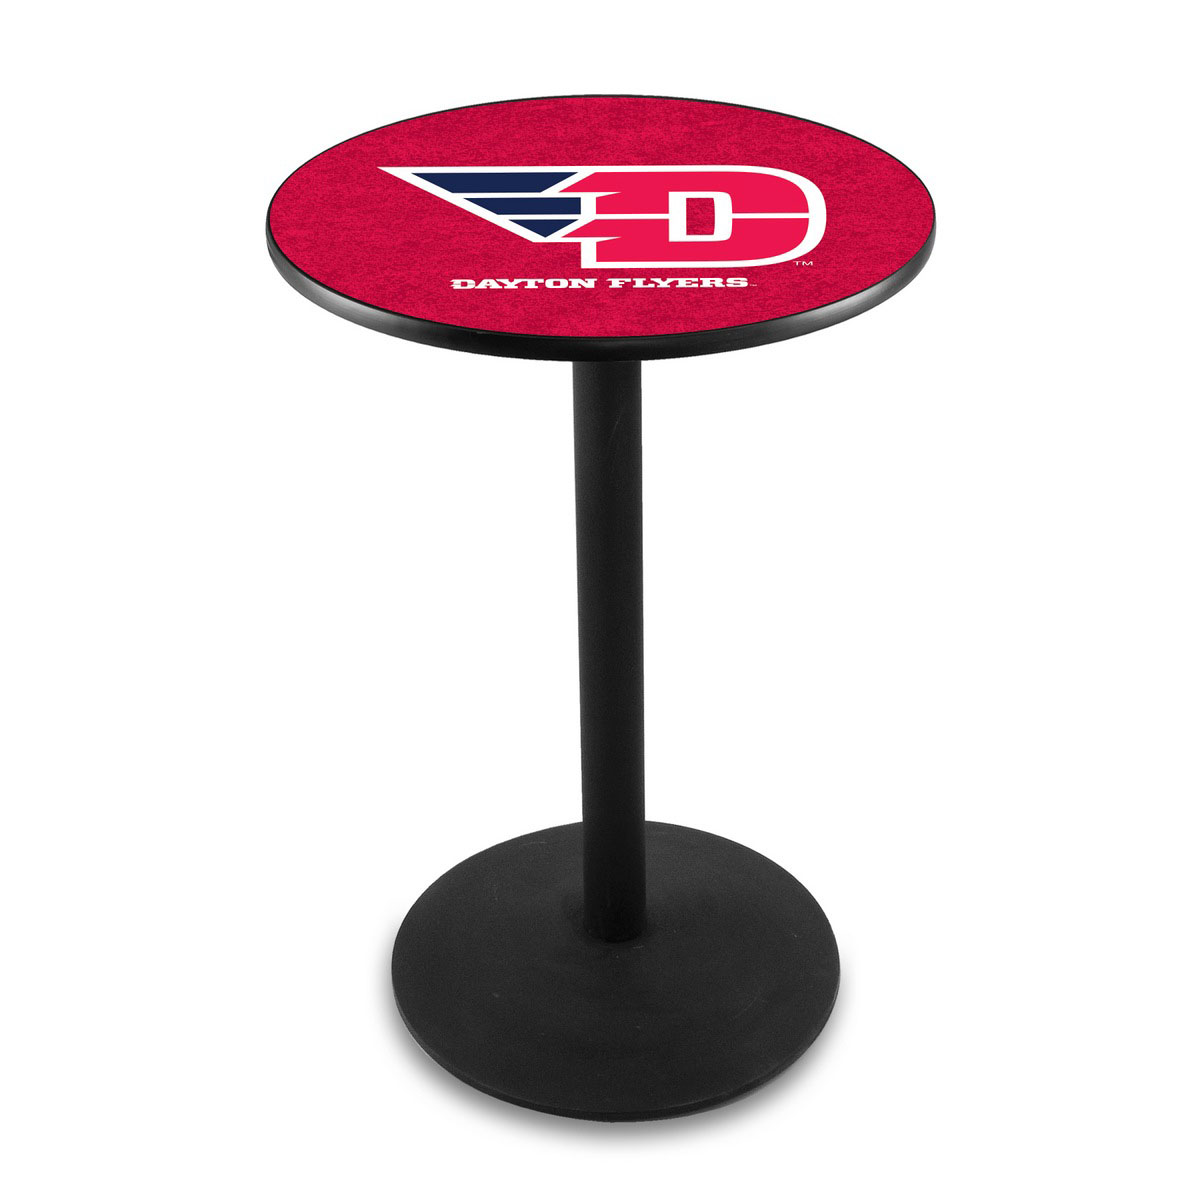 Stylish University Dayton Logo Pub Bar Table Round Stand Product Photo